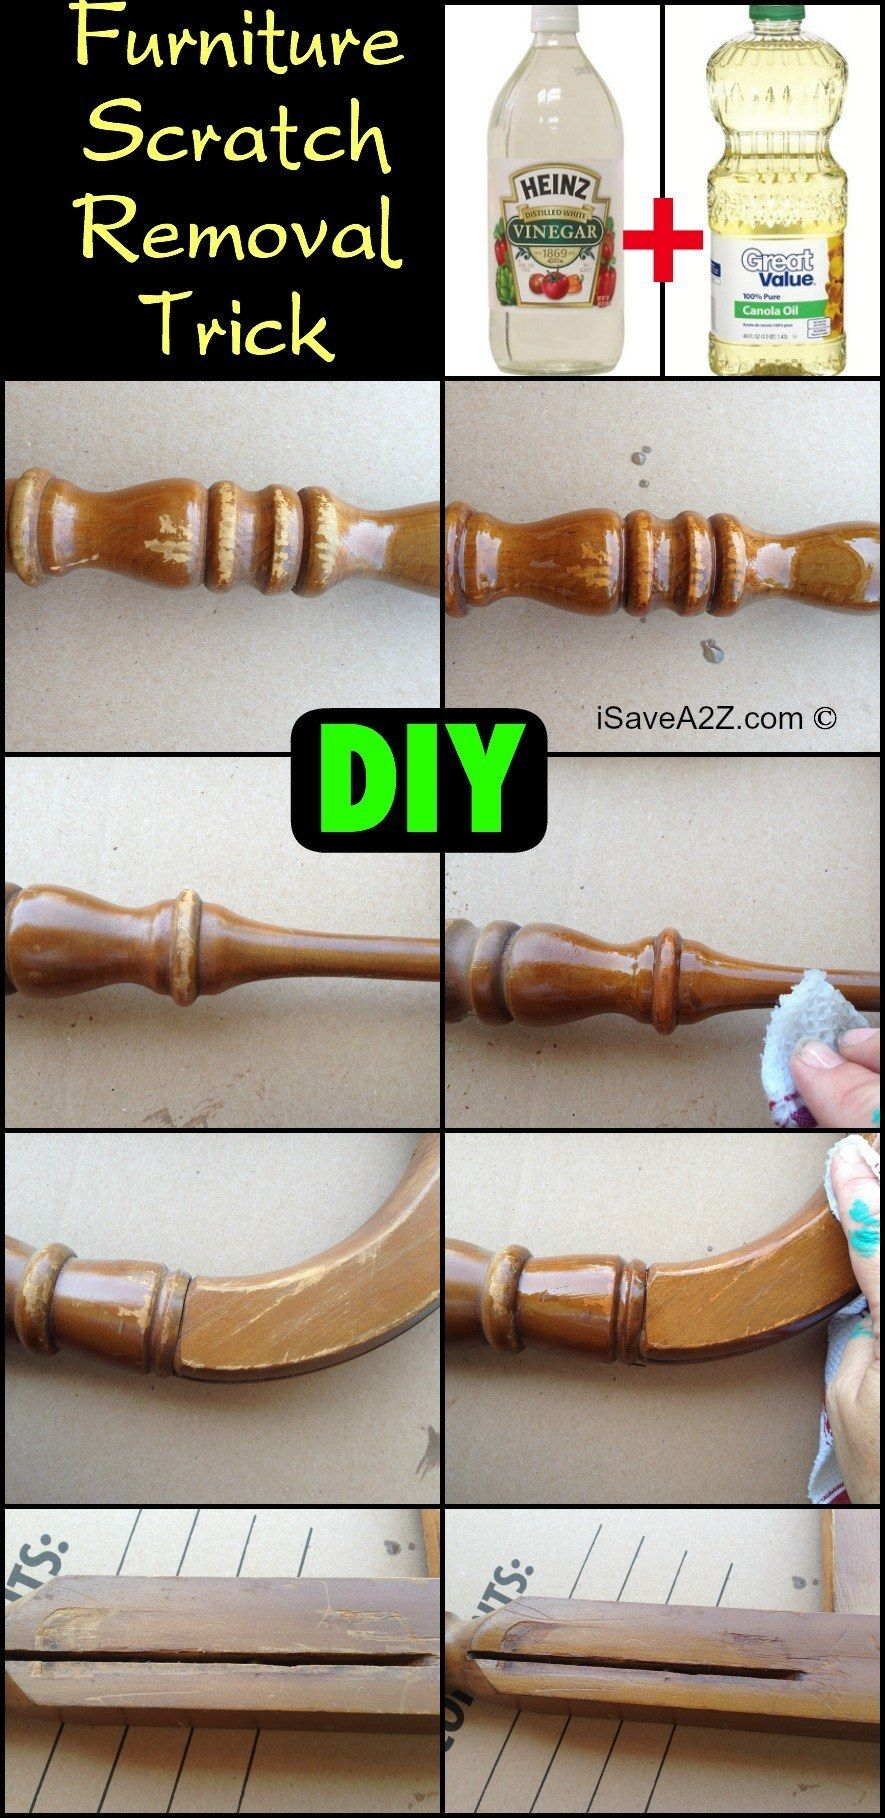 DIY Oil And Vinegar Furniture Scratch Removal Trick